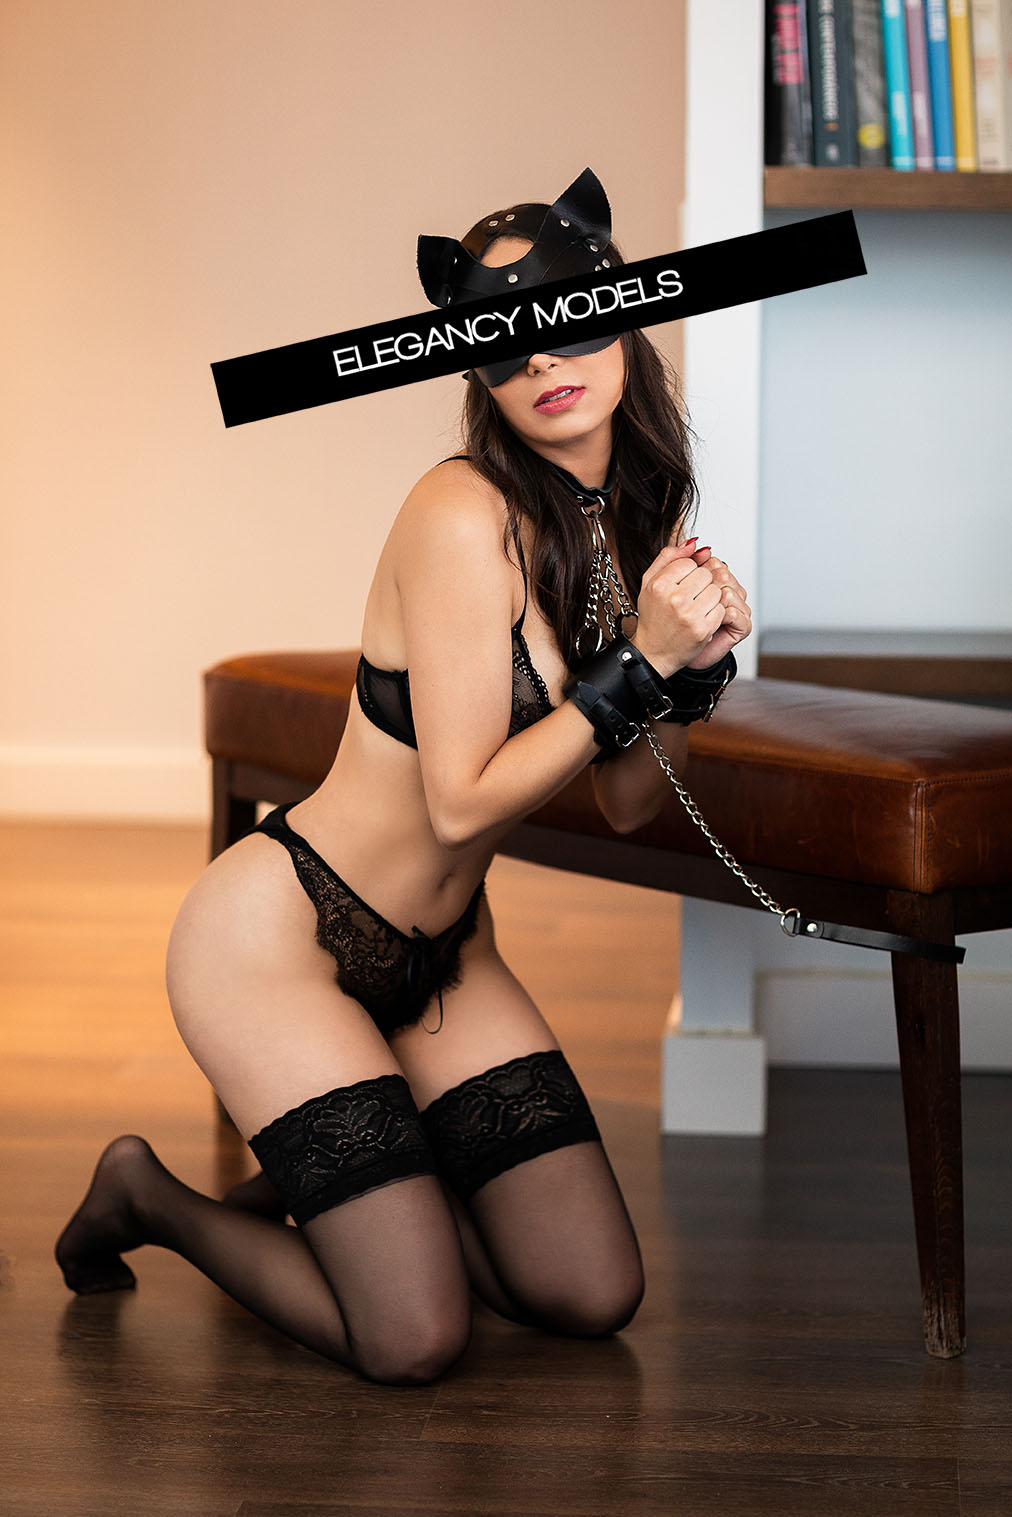 alicia escort madrid 5 1